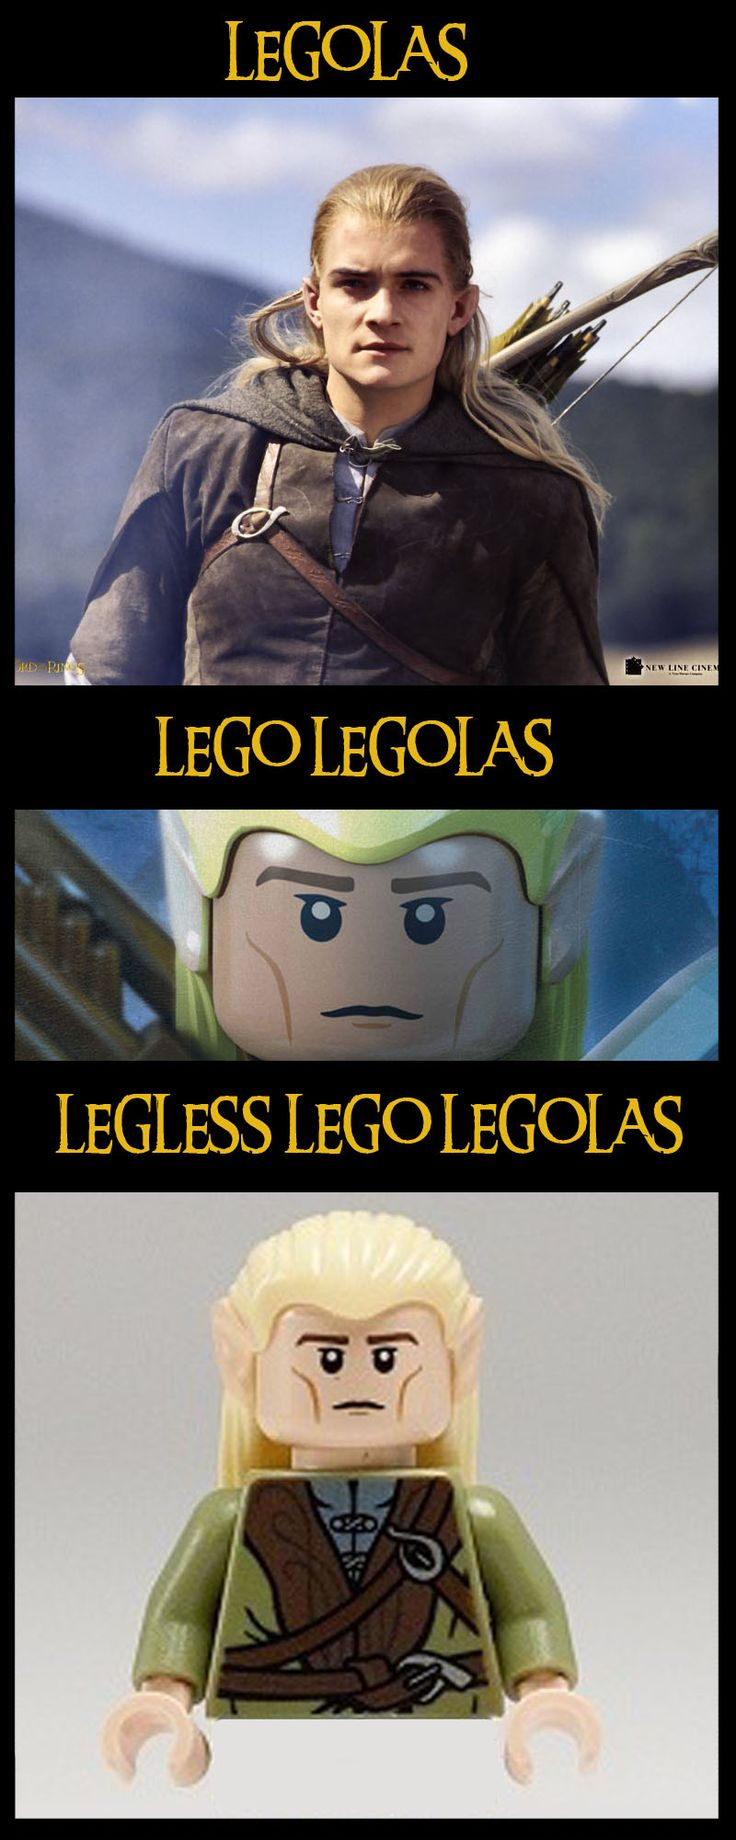 Haha! Oh Legolas...there are so many jokes for you ...